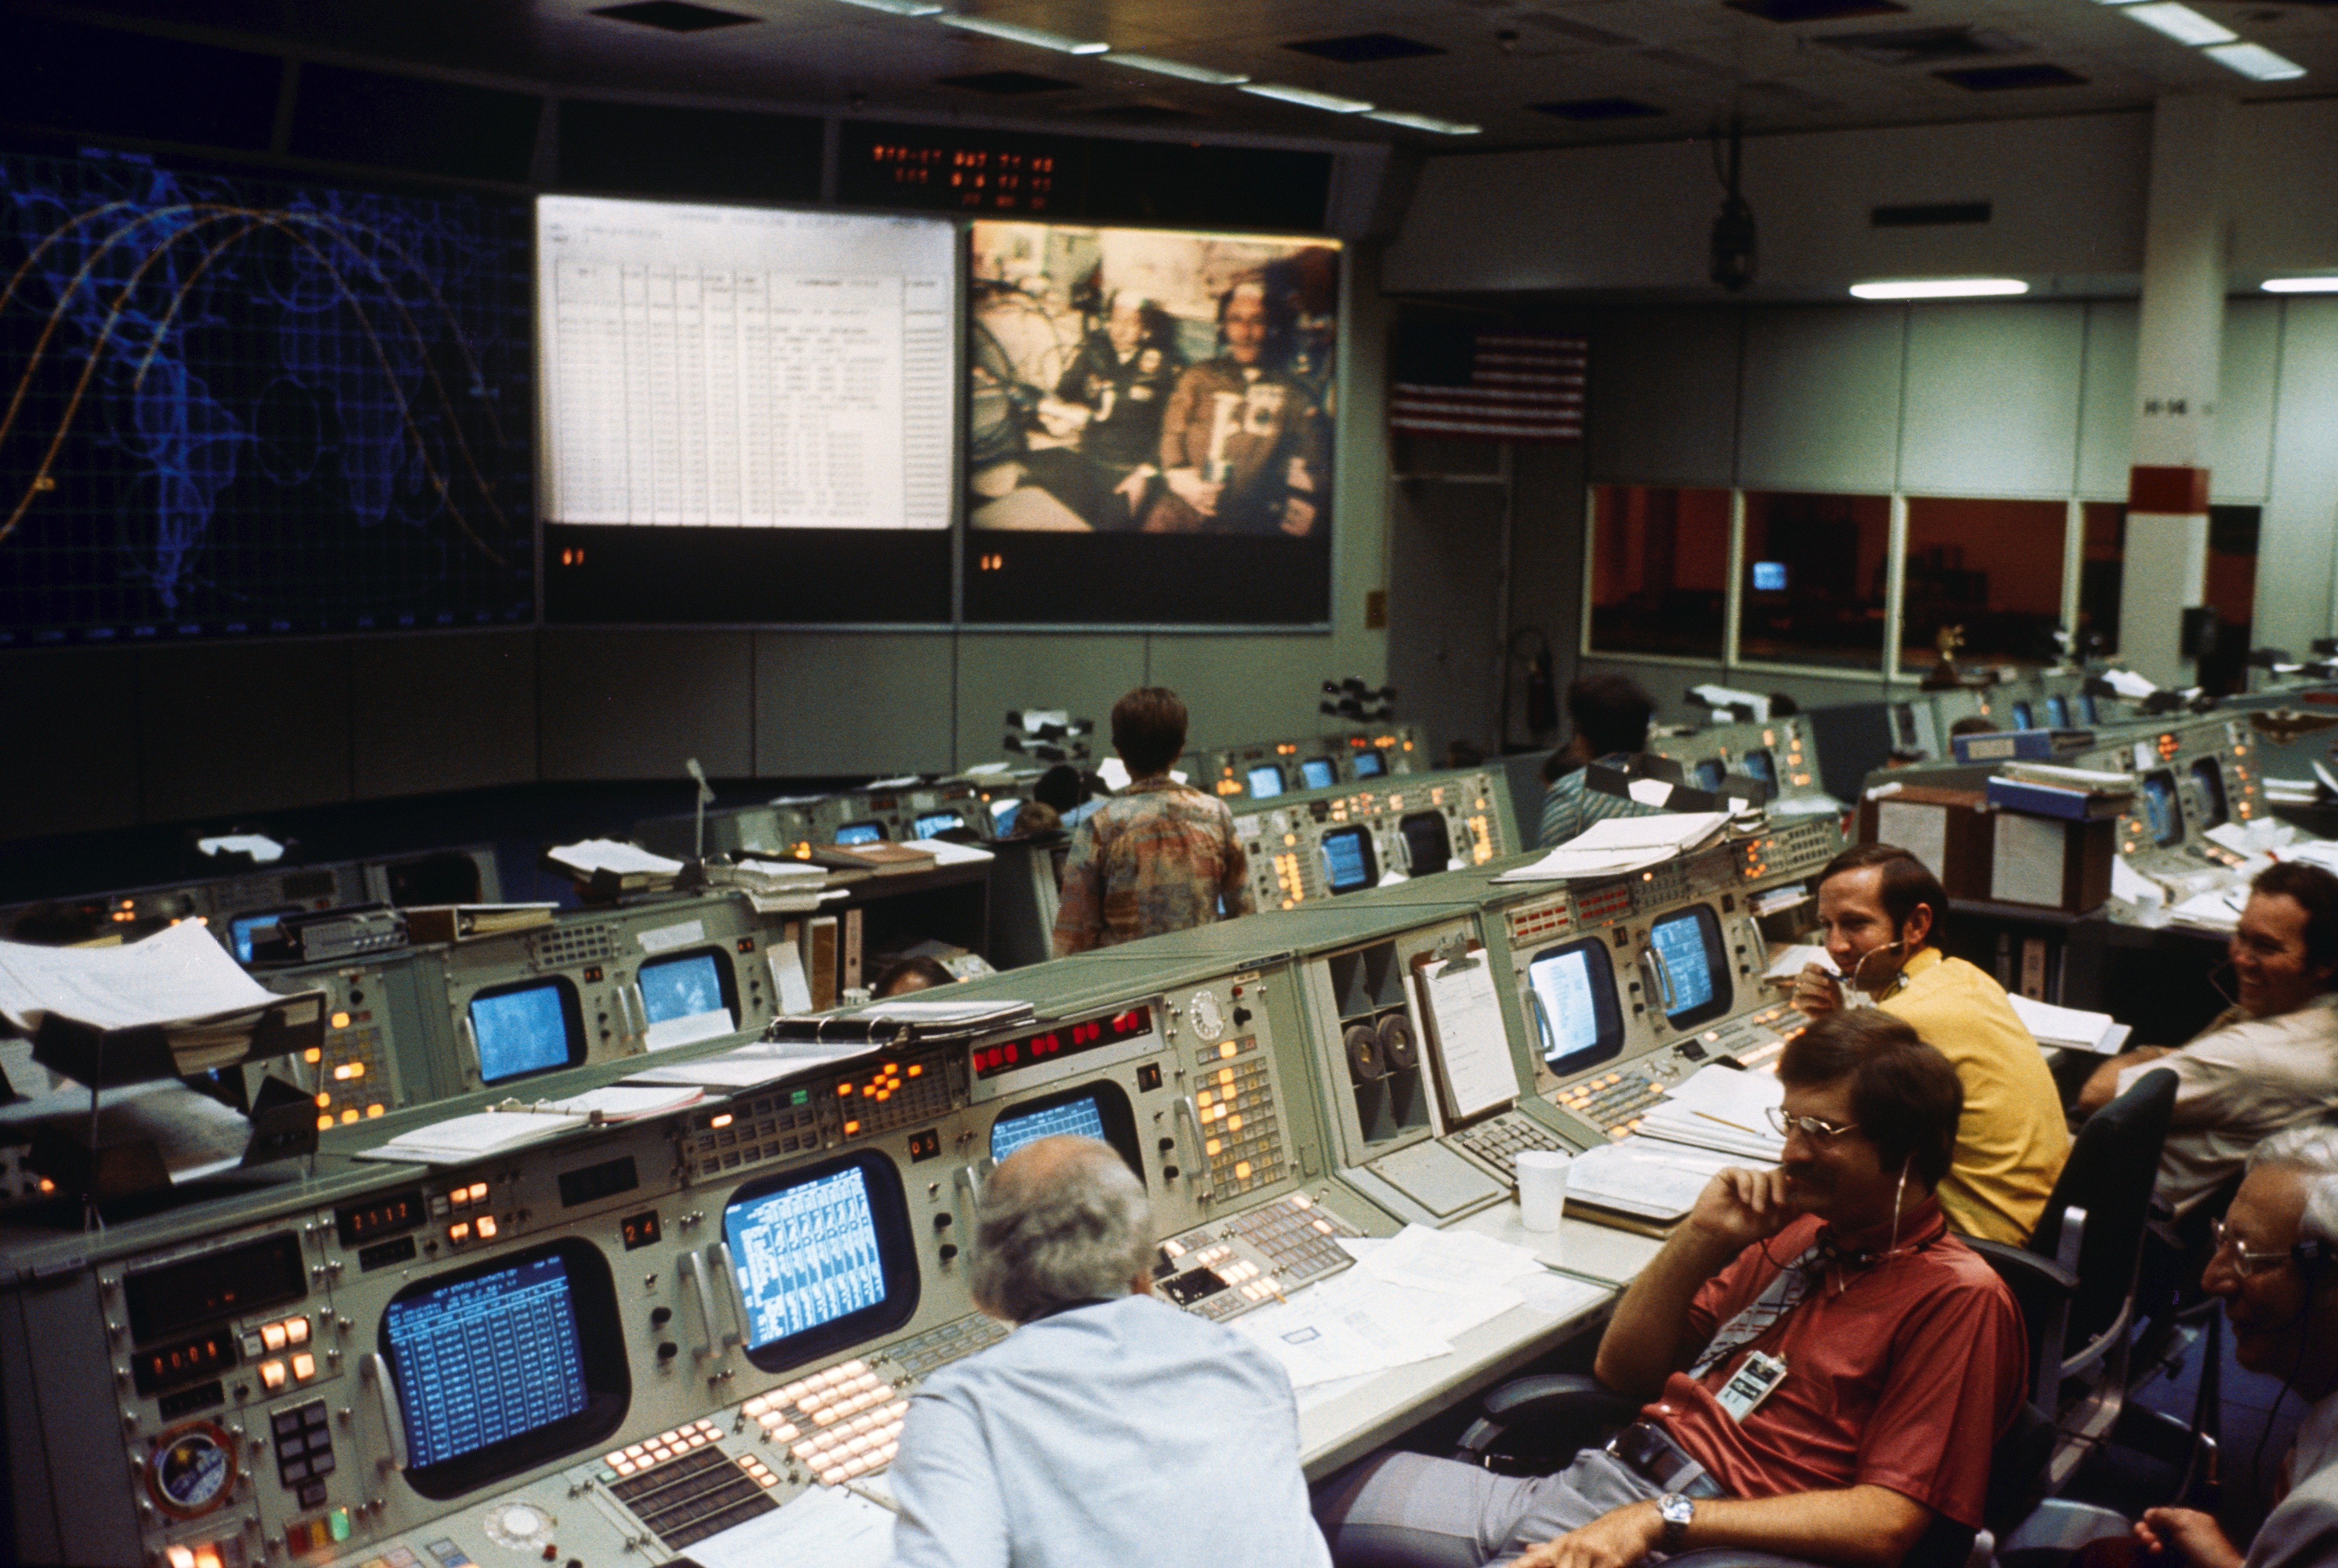 Activity inside Mission Control in Houston during the Apollo Soyuz Test Project docking mission.